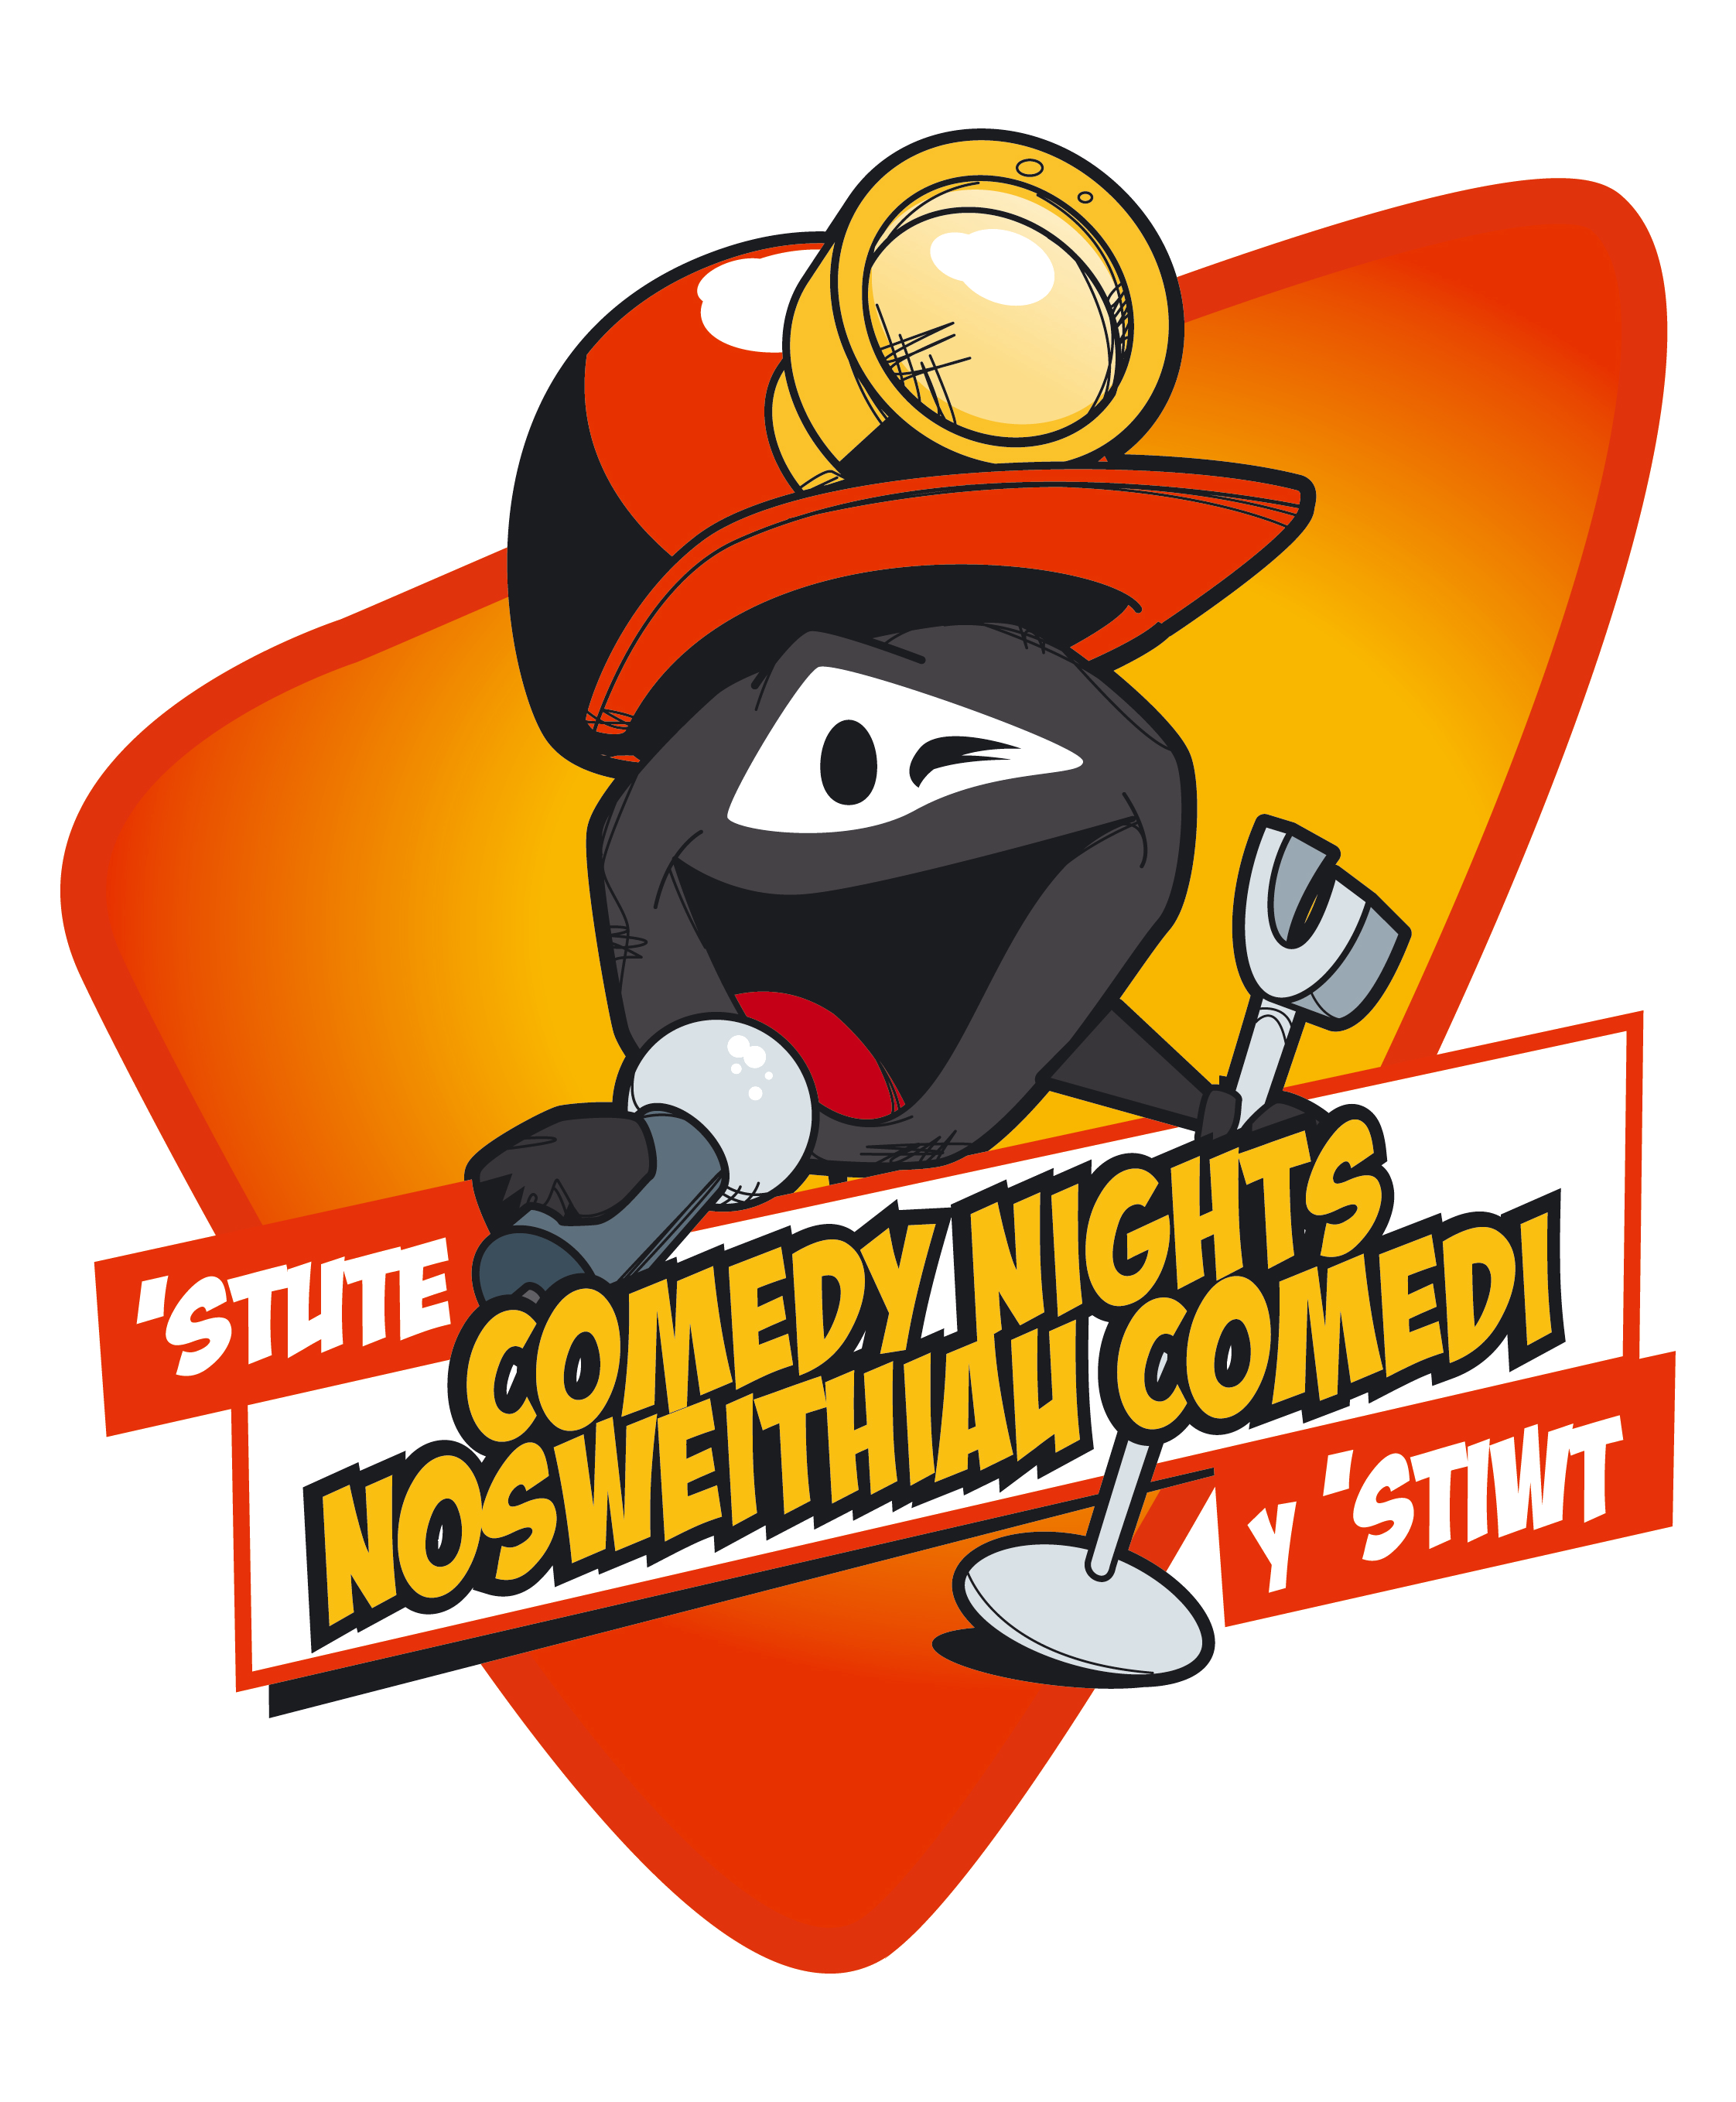 'Stute Comedy Night